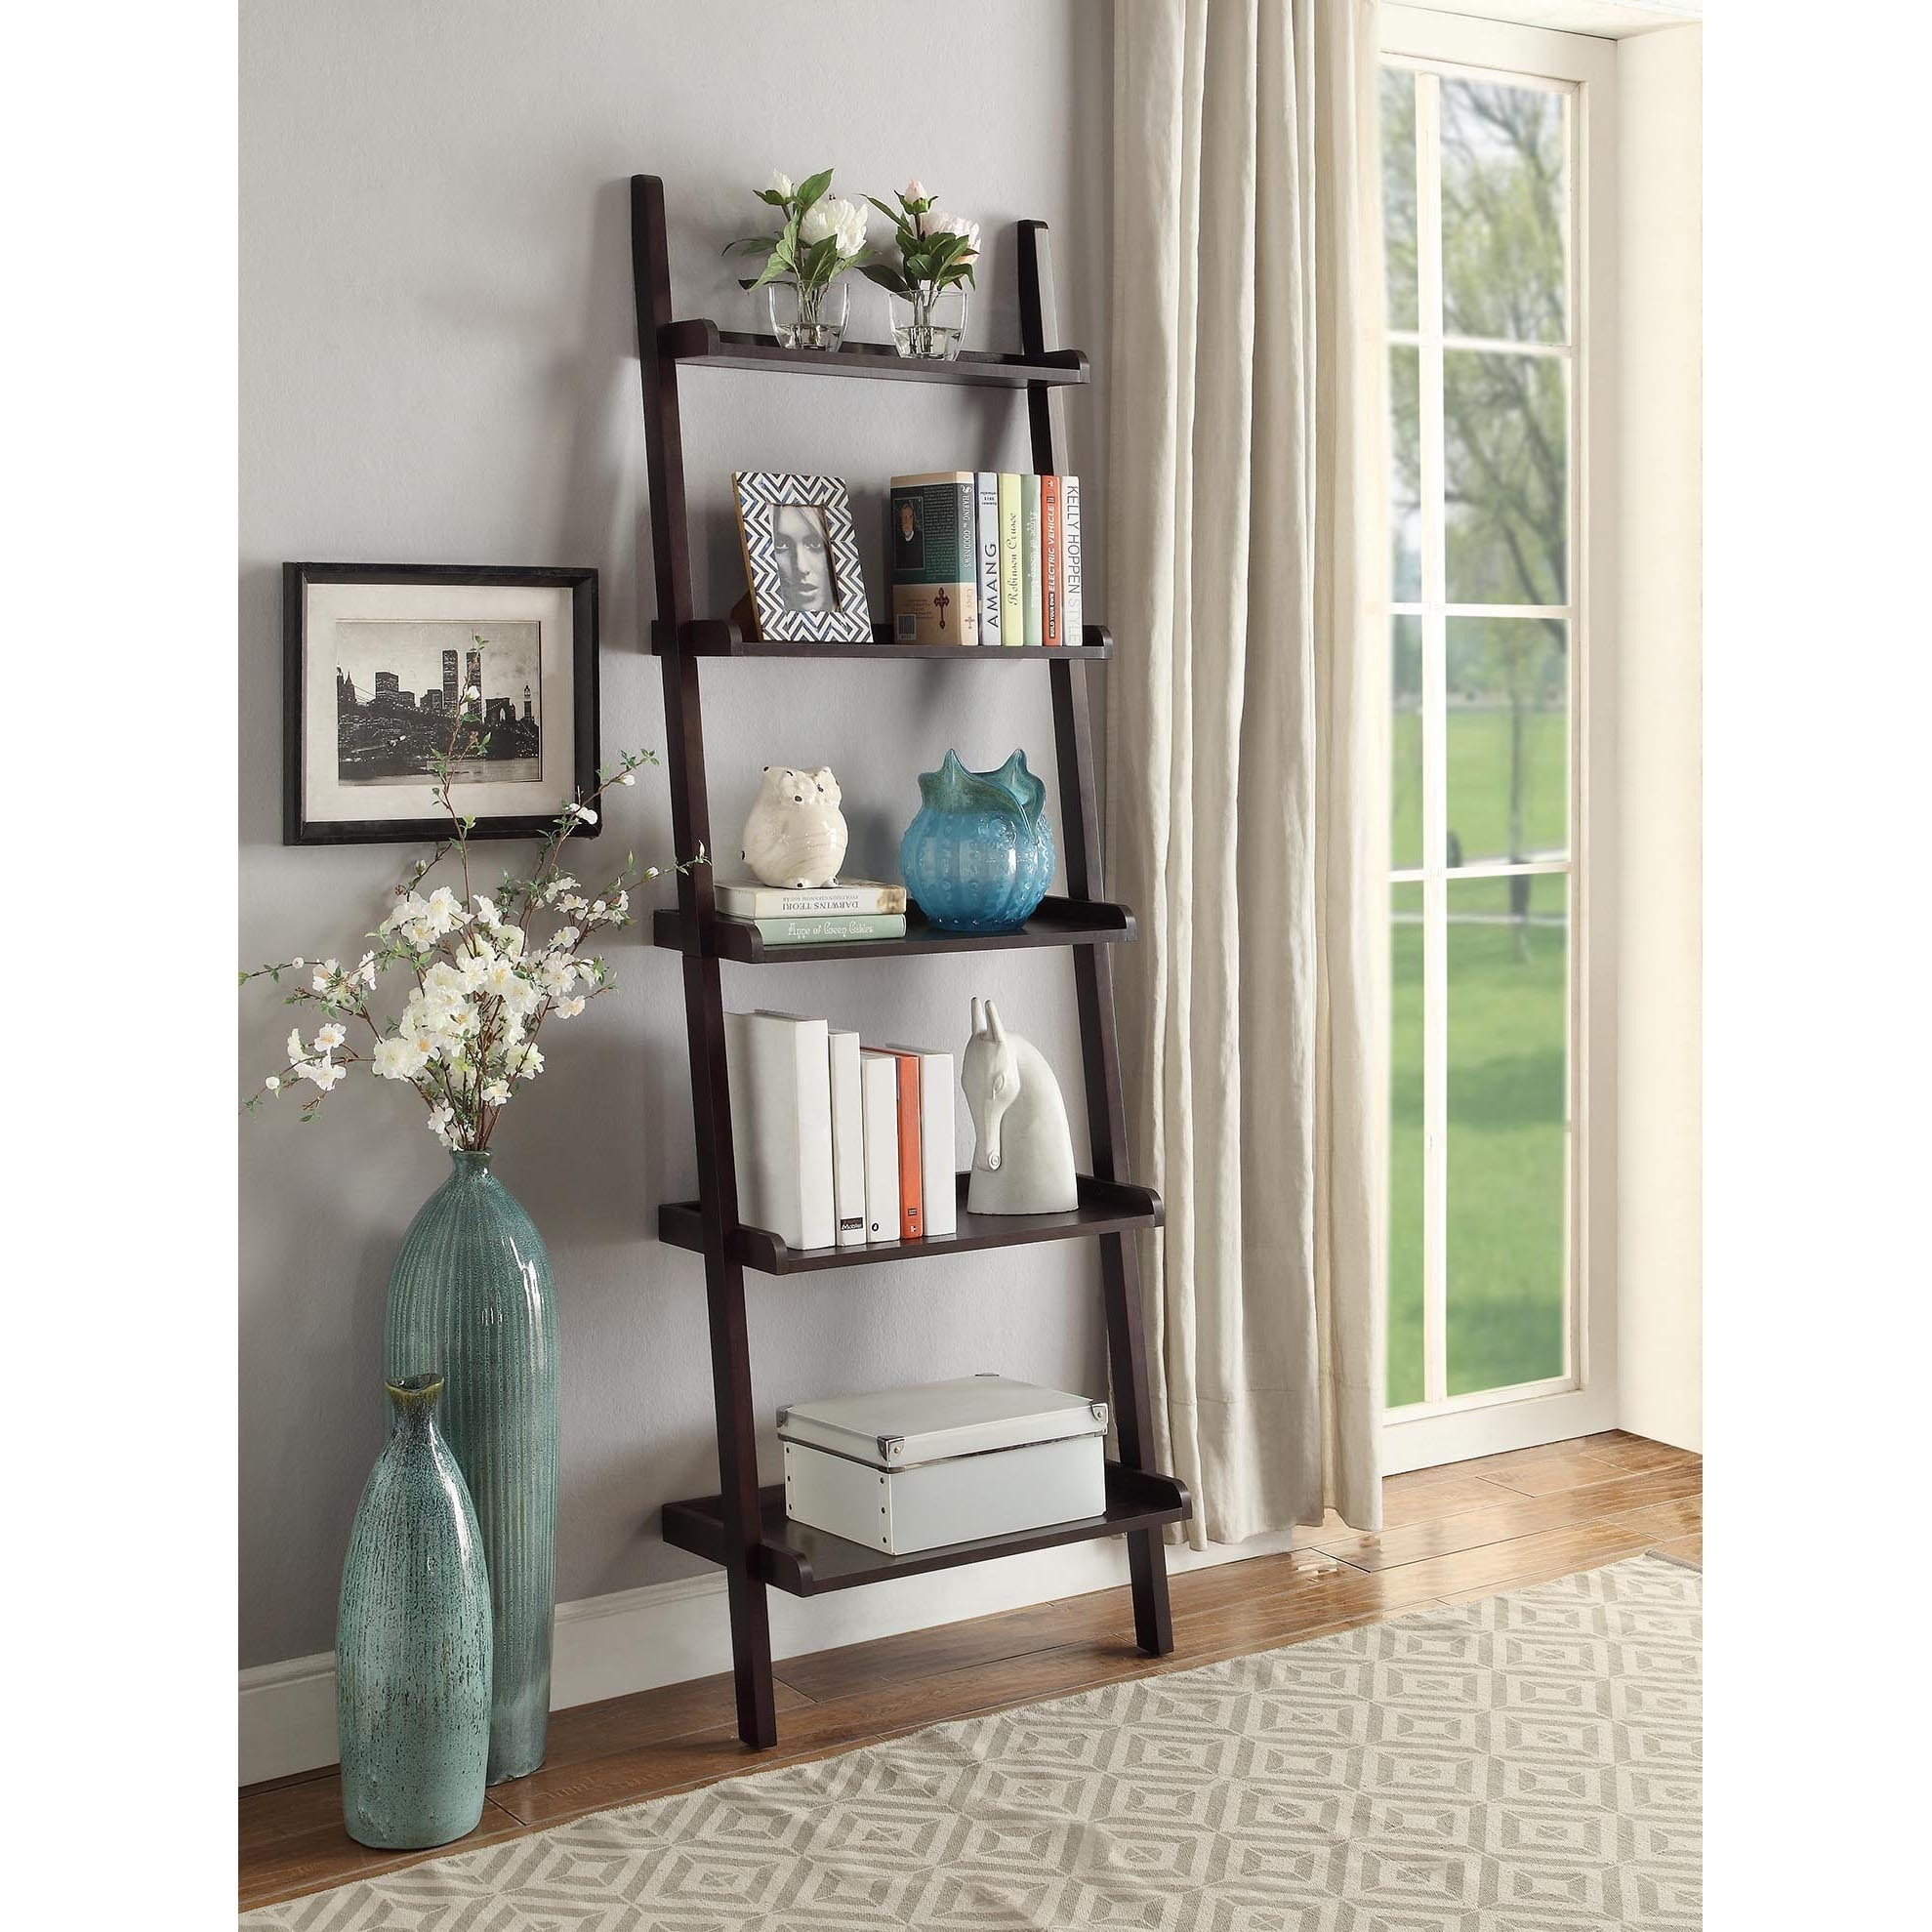 shelf home bookshelf leaning of insight designs wood decorating image ladder